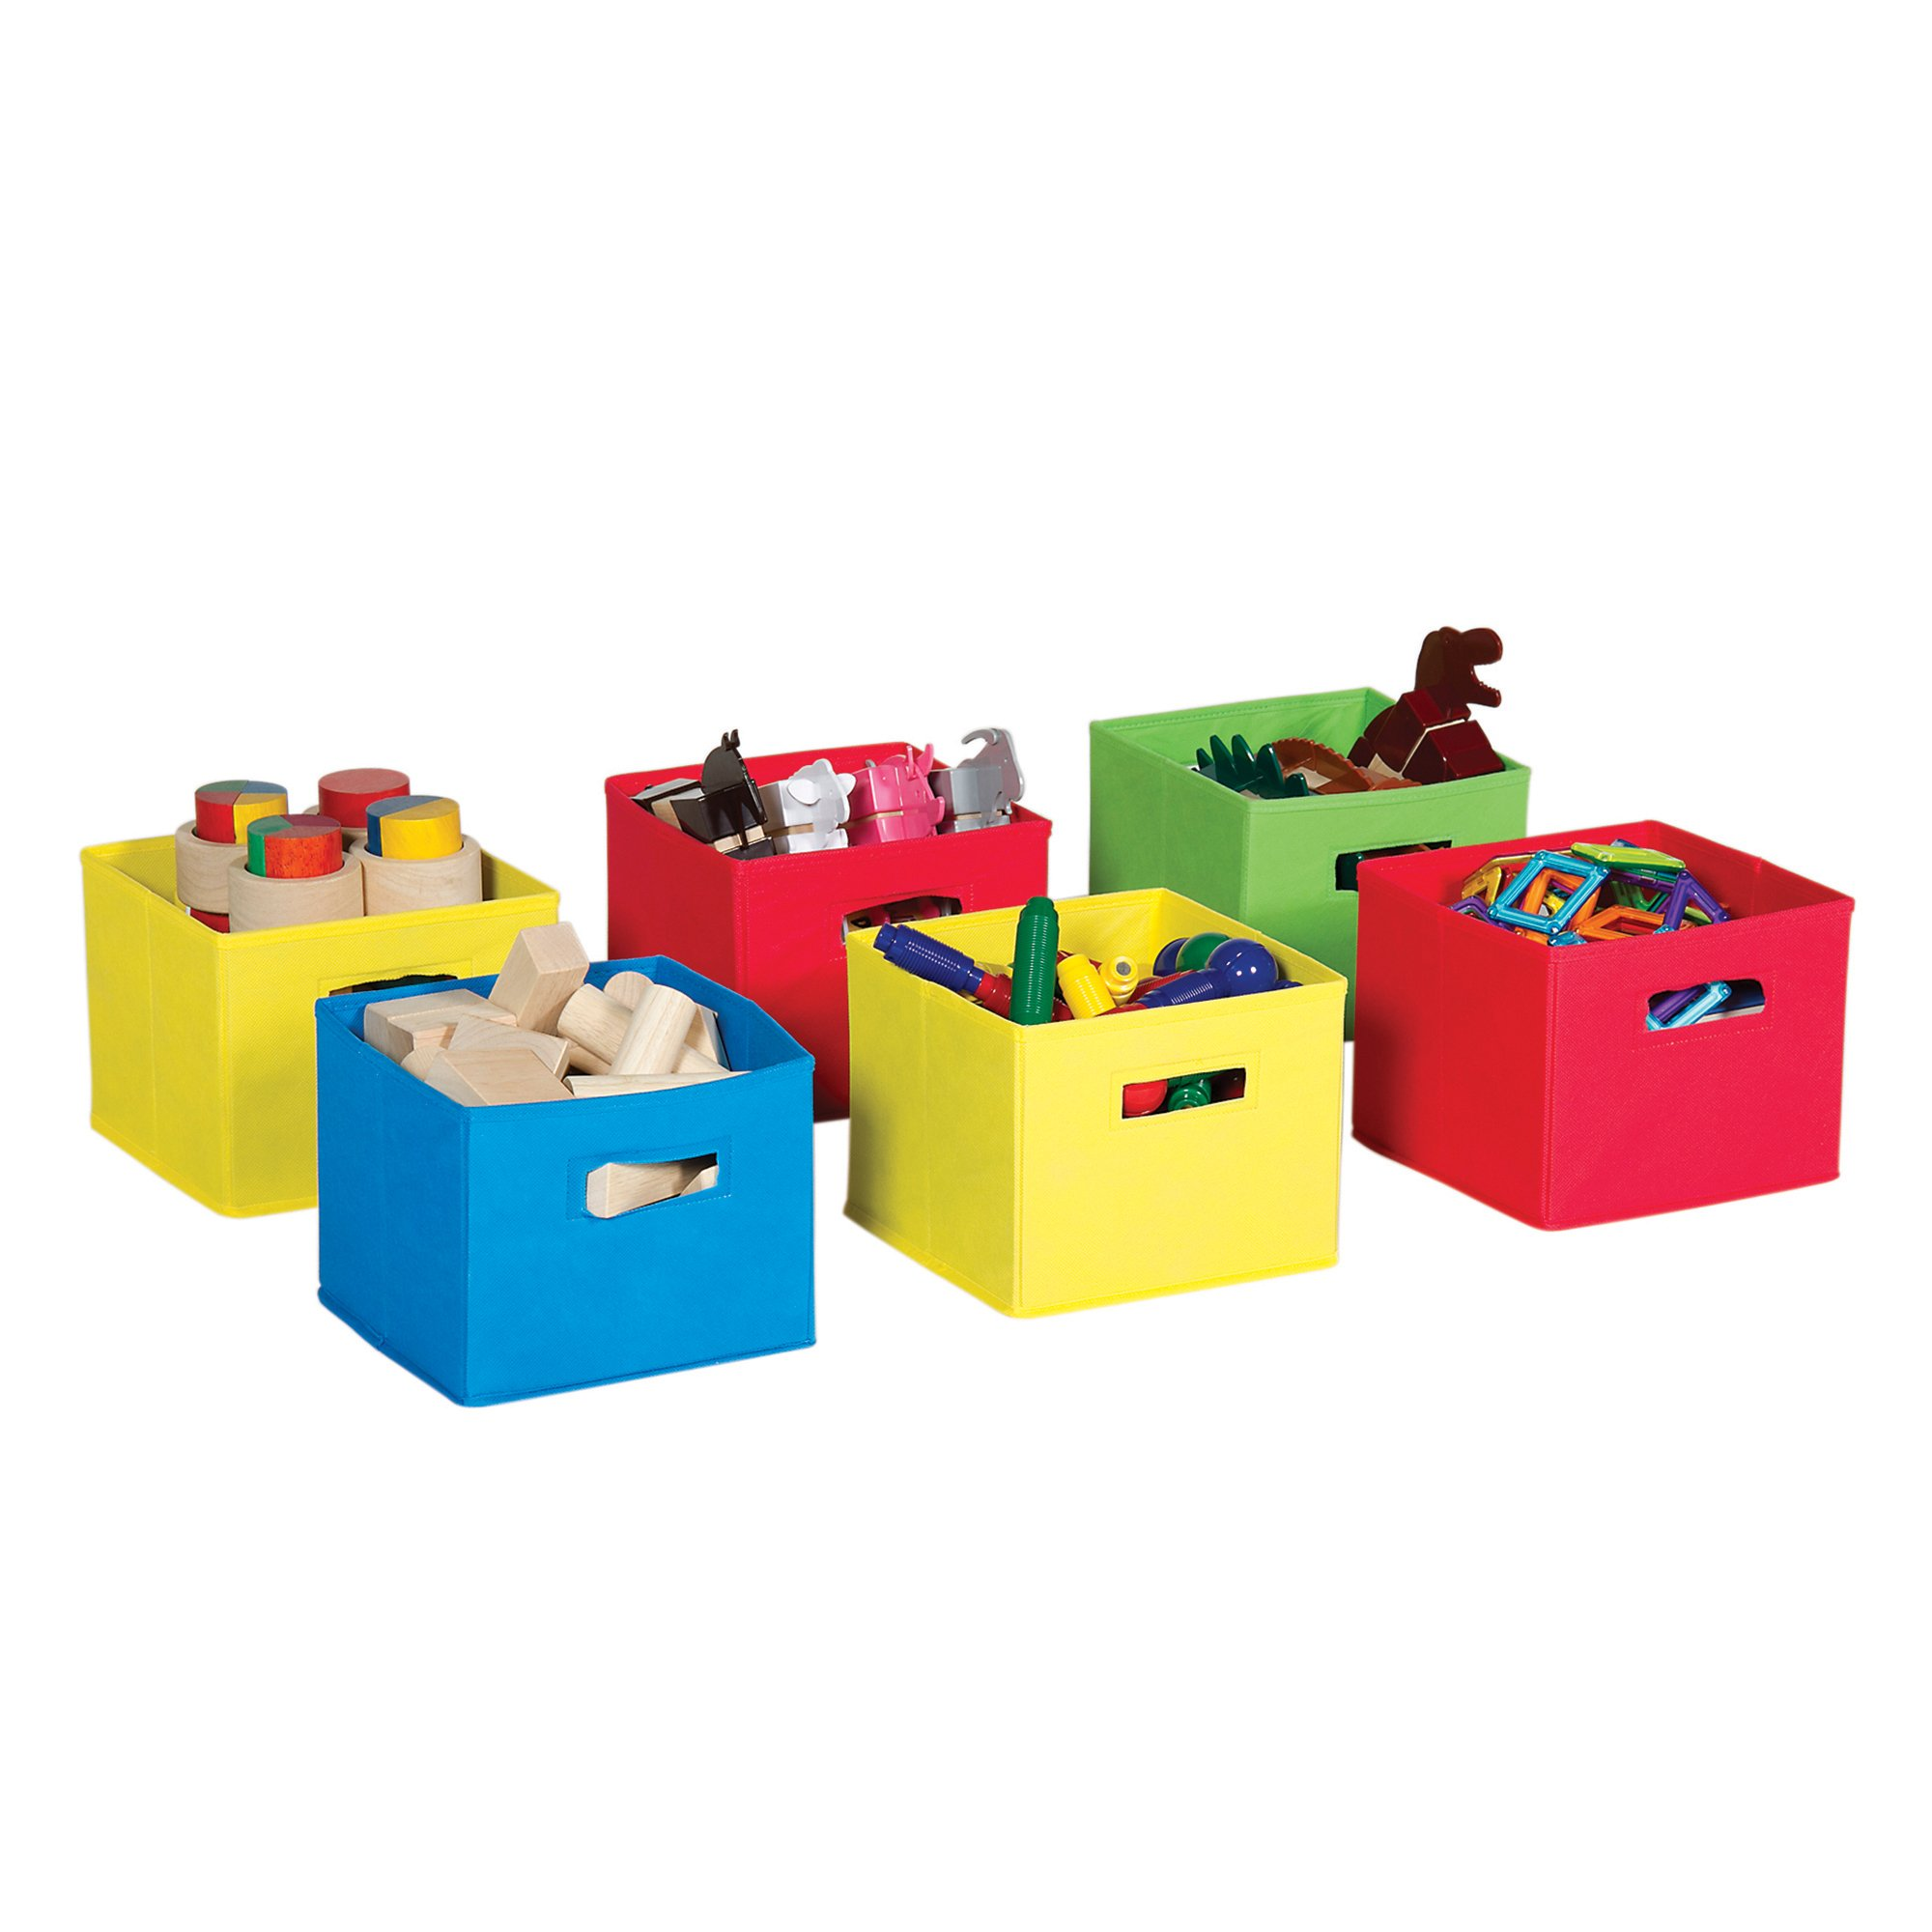 Guidecraft Multi-Color Fabric Bins: Set Of 6, Primary Colored Foldable Cloth Classroom Storage, Kid's Toy & Books Cube Organizers